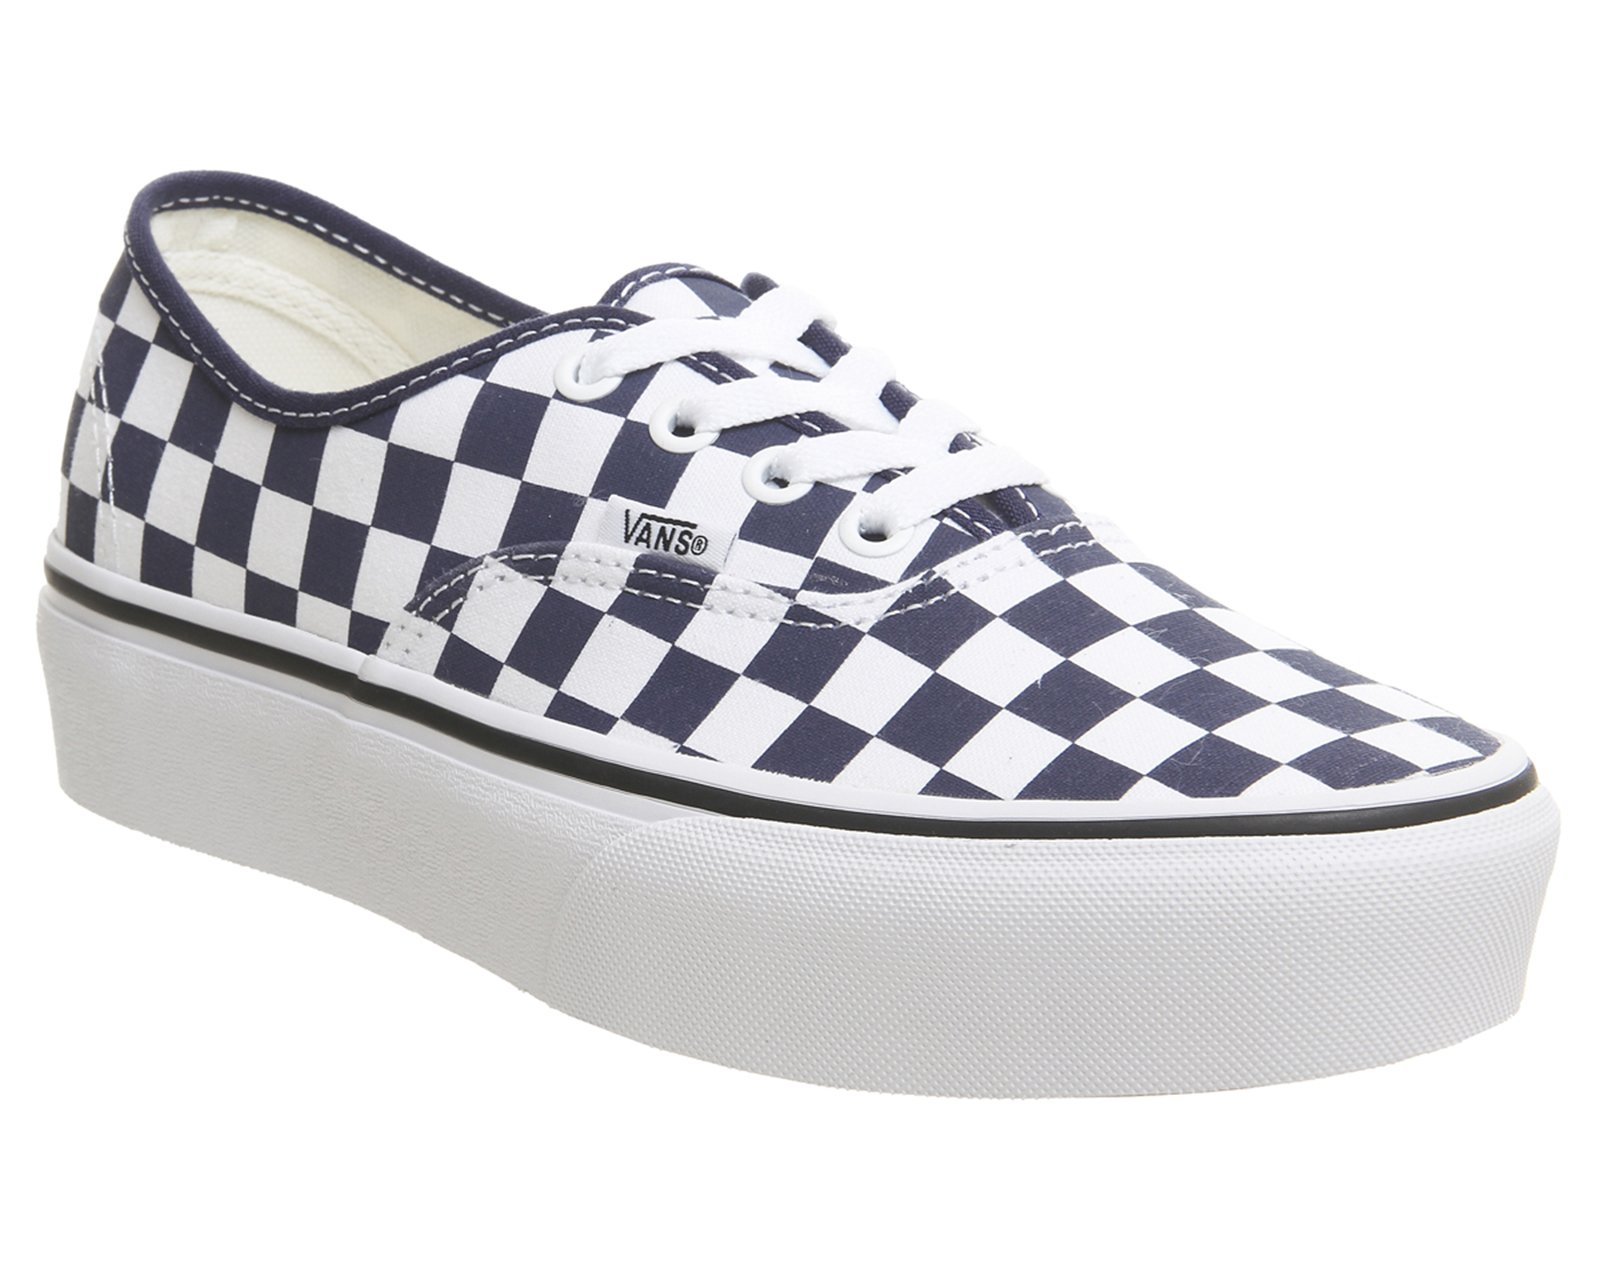 Sentinel Womens Vans Authentic Platforms Medieval Blue True White  Checkerboard Trainers S 45b474e66167